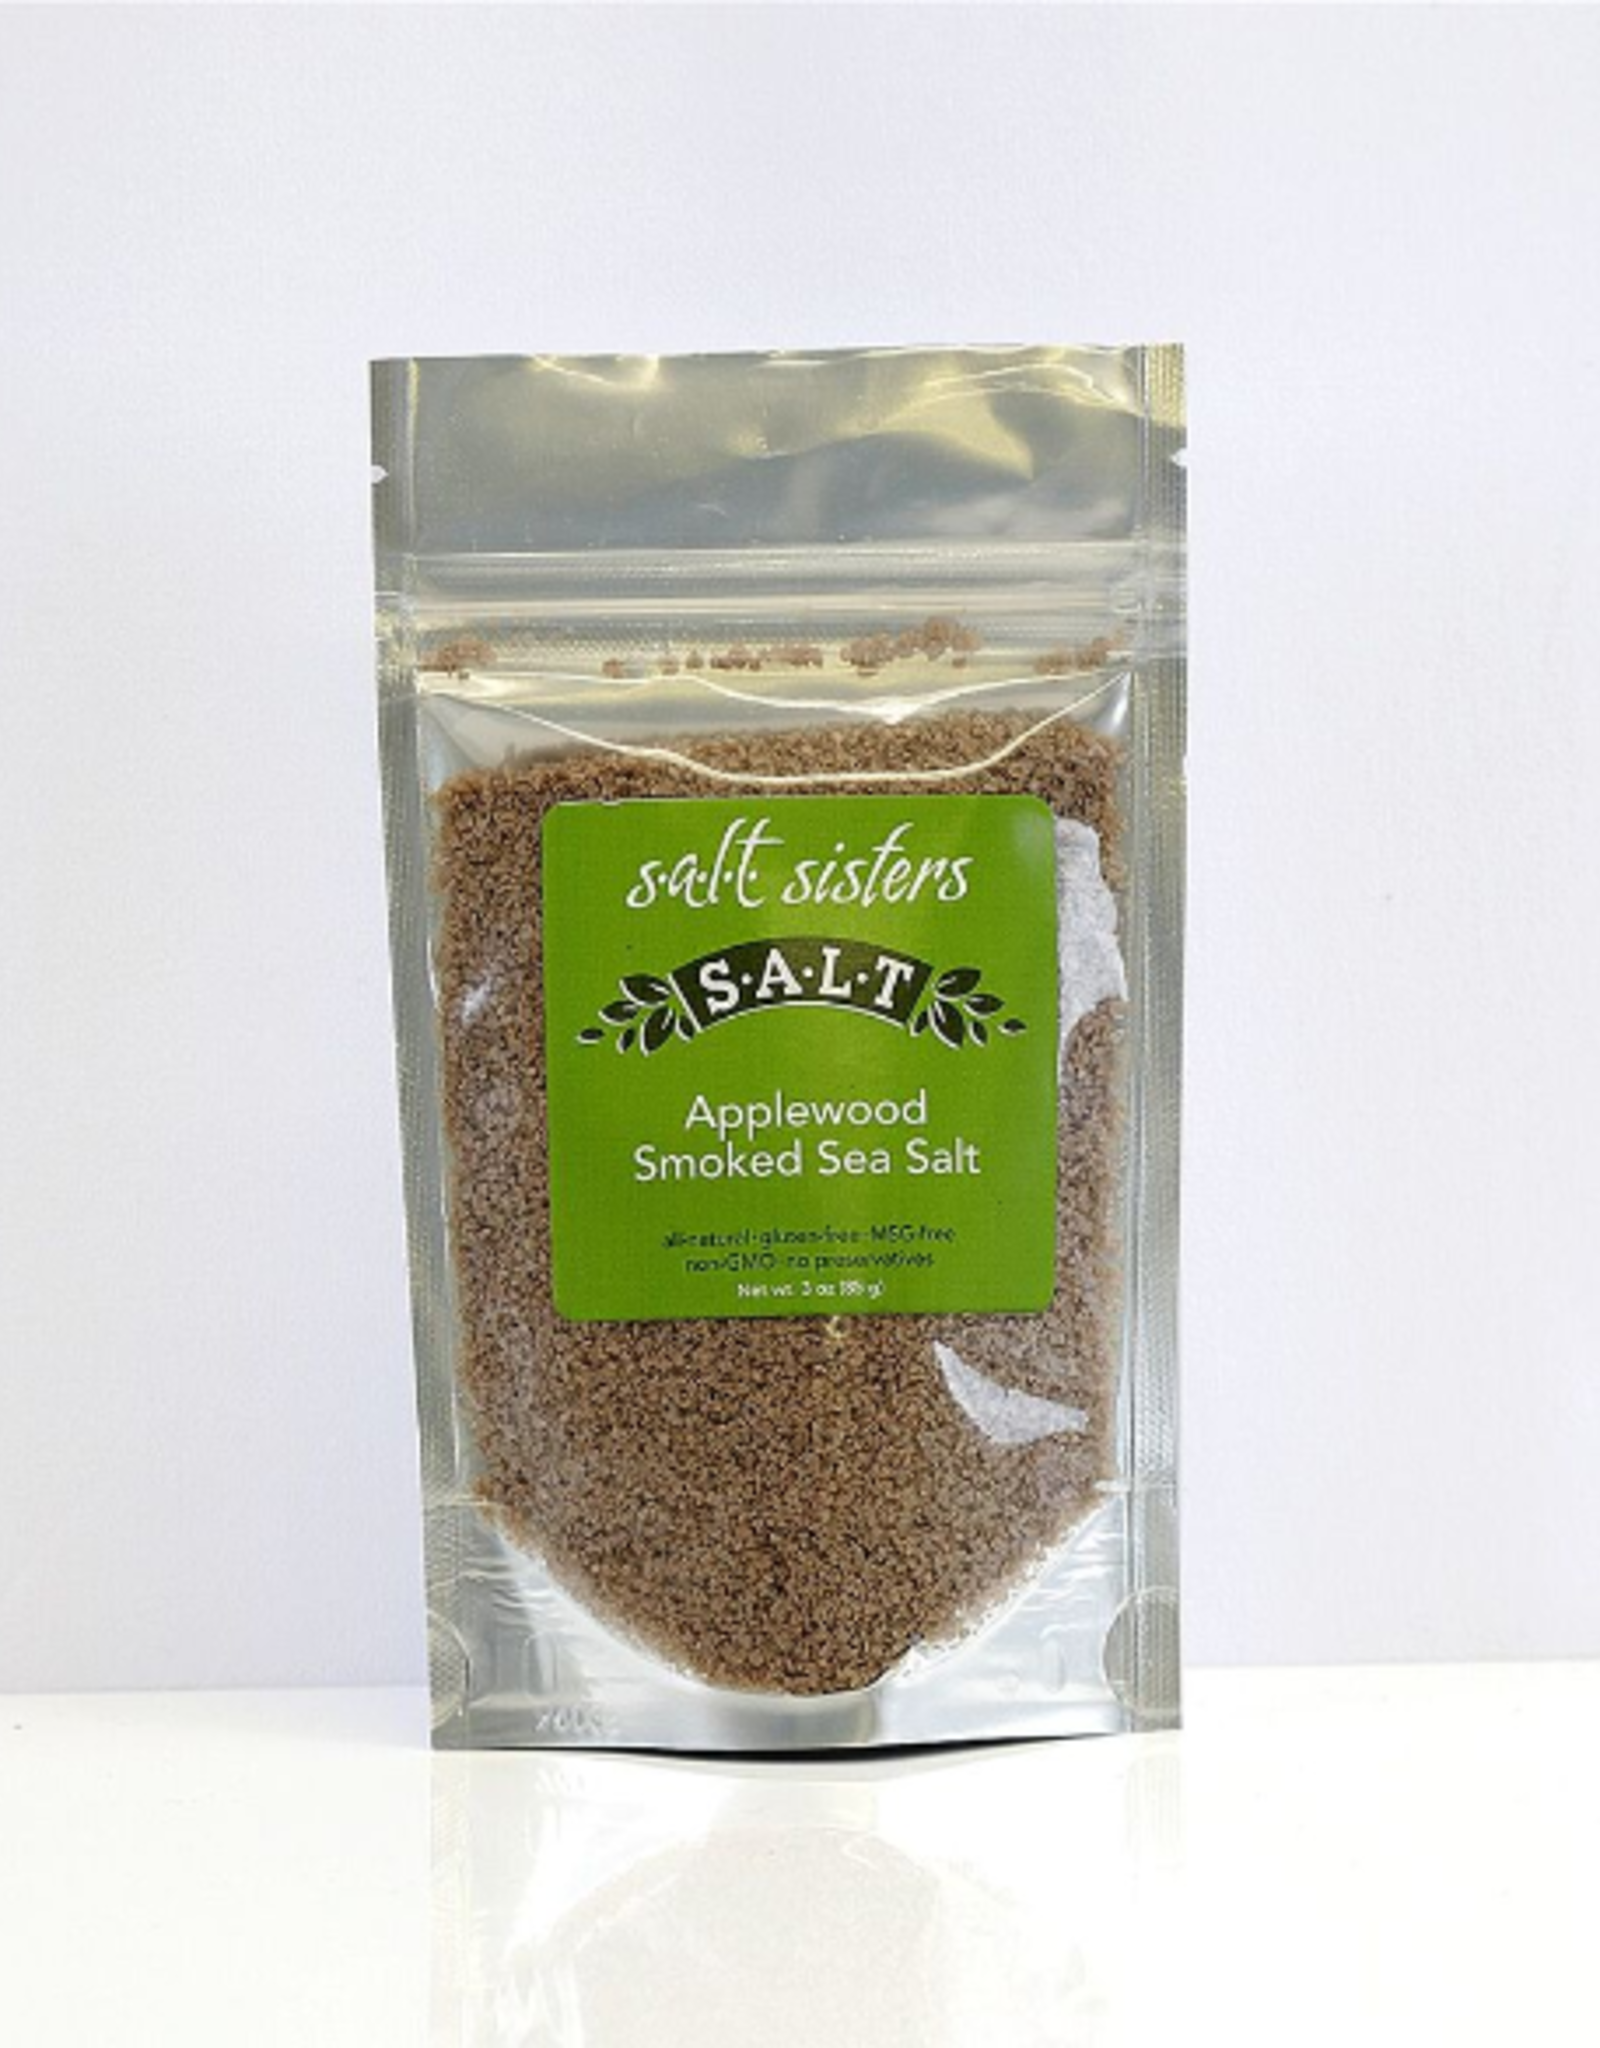 Salt Sisters Applewood Smoked Sea Salt